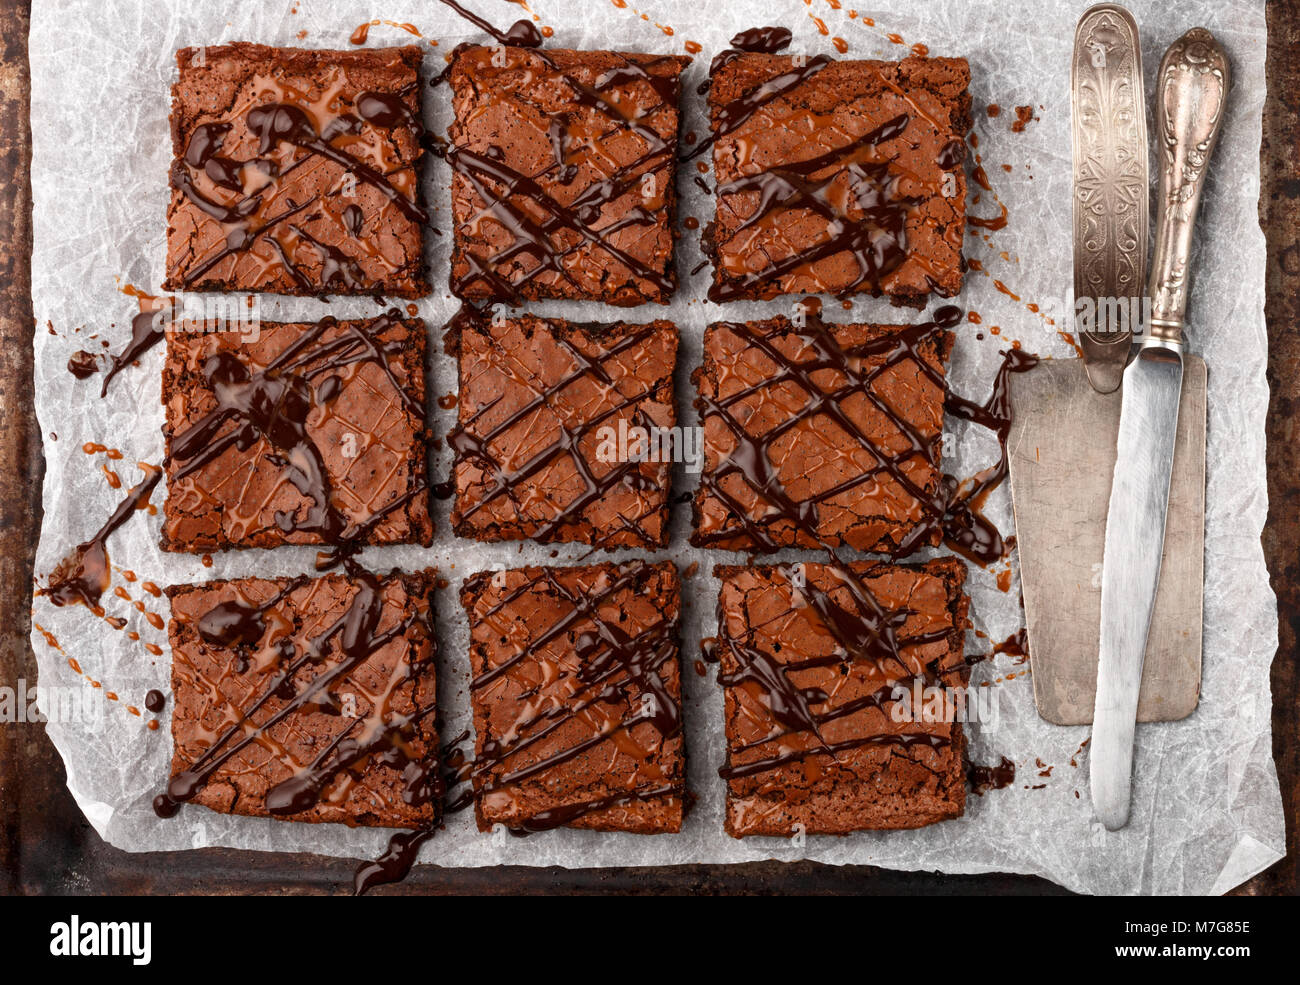 Brownie. Homemade cake with chocolate and caramel. American dessert. Top view - Stock Image